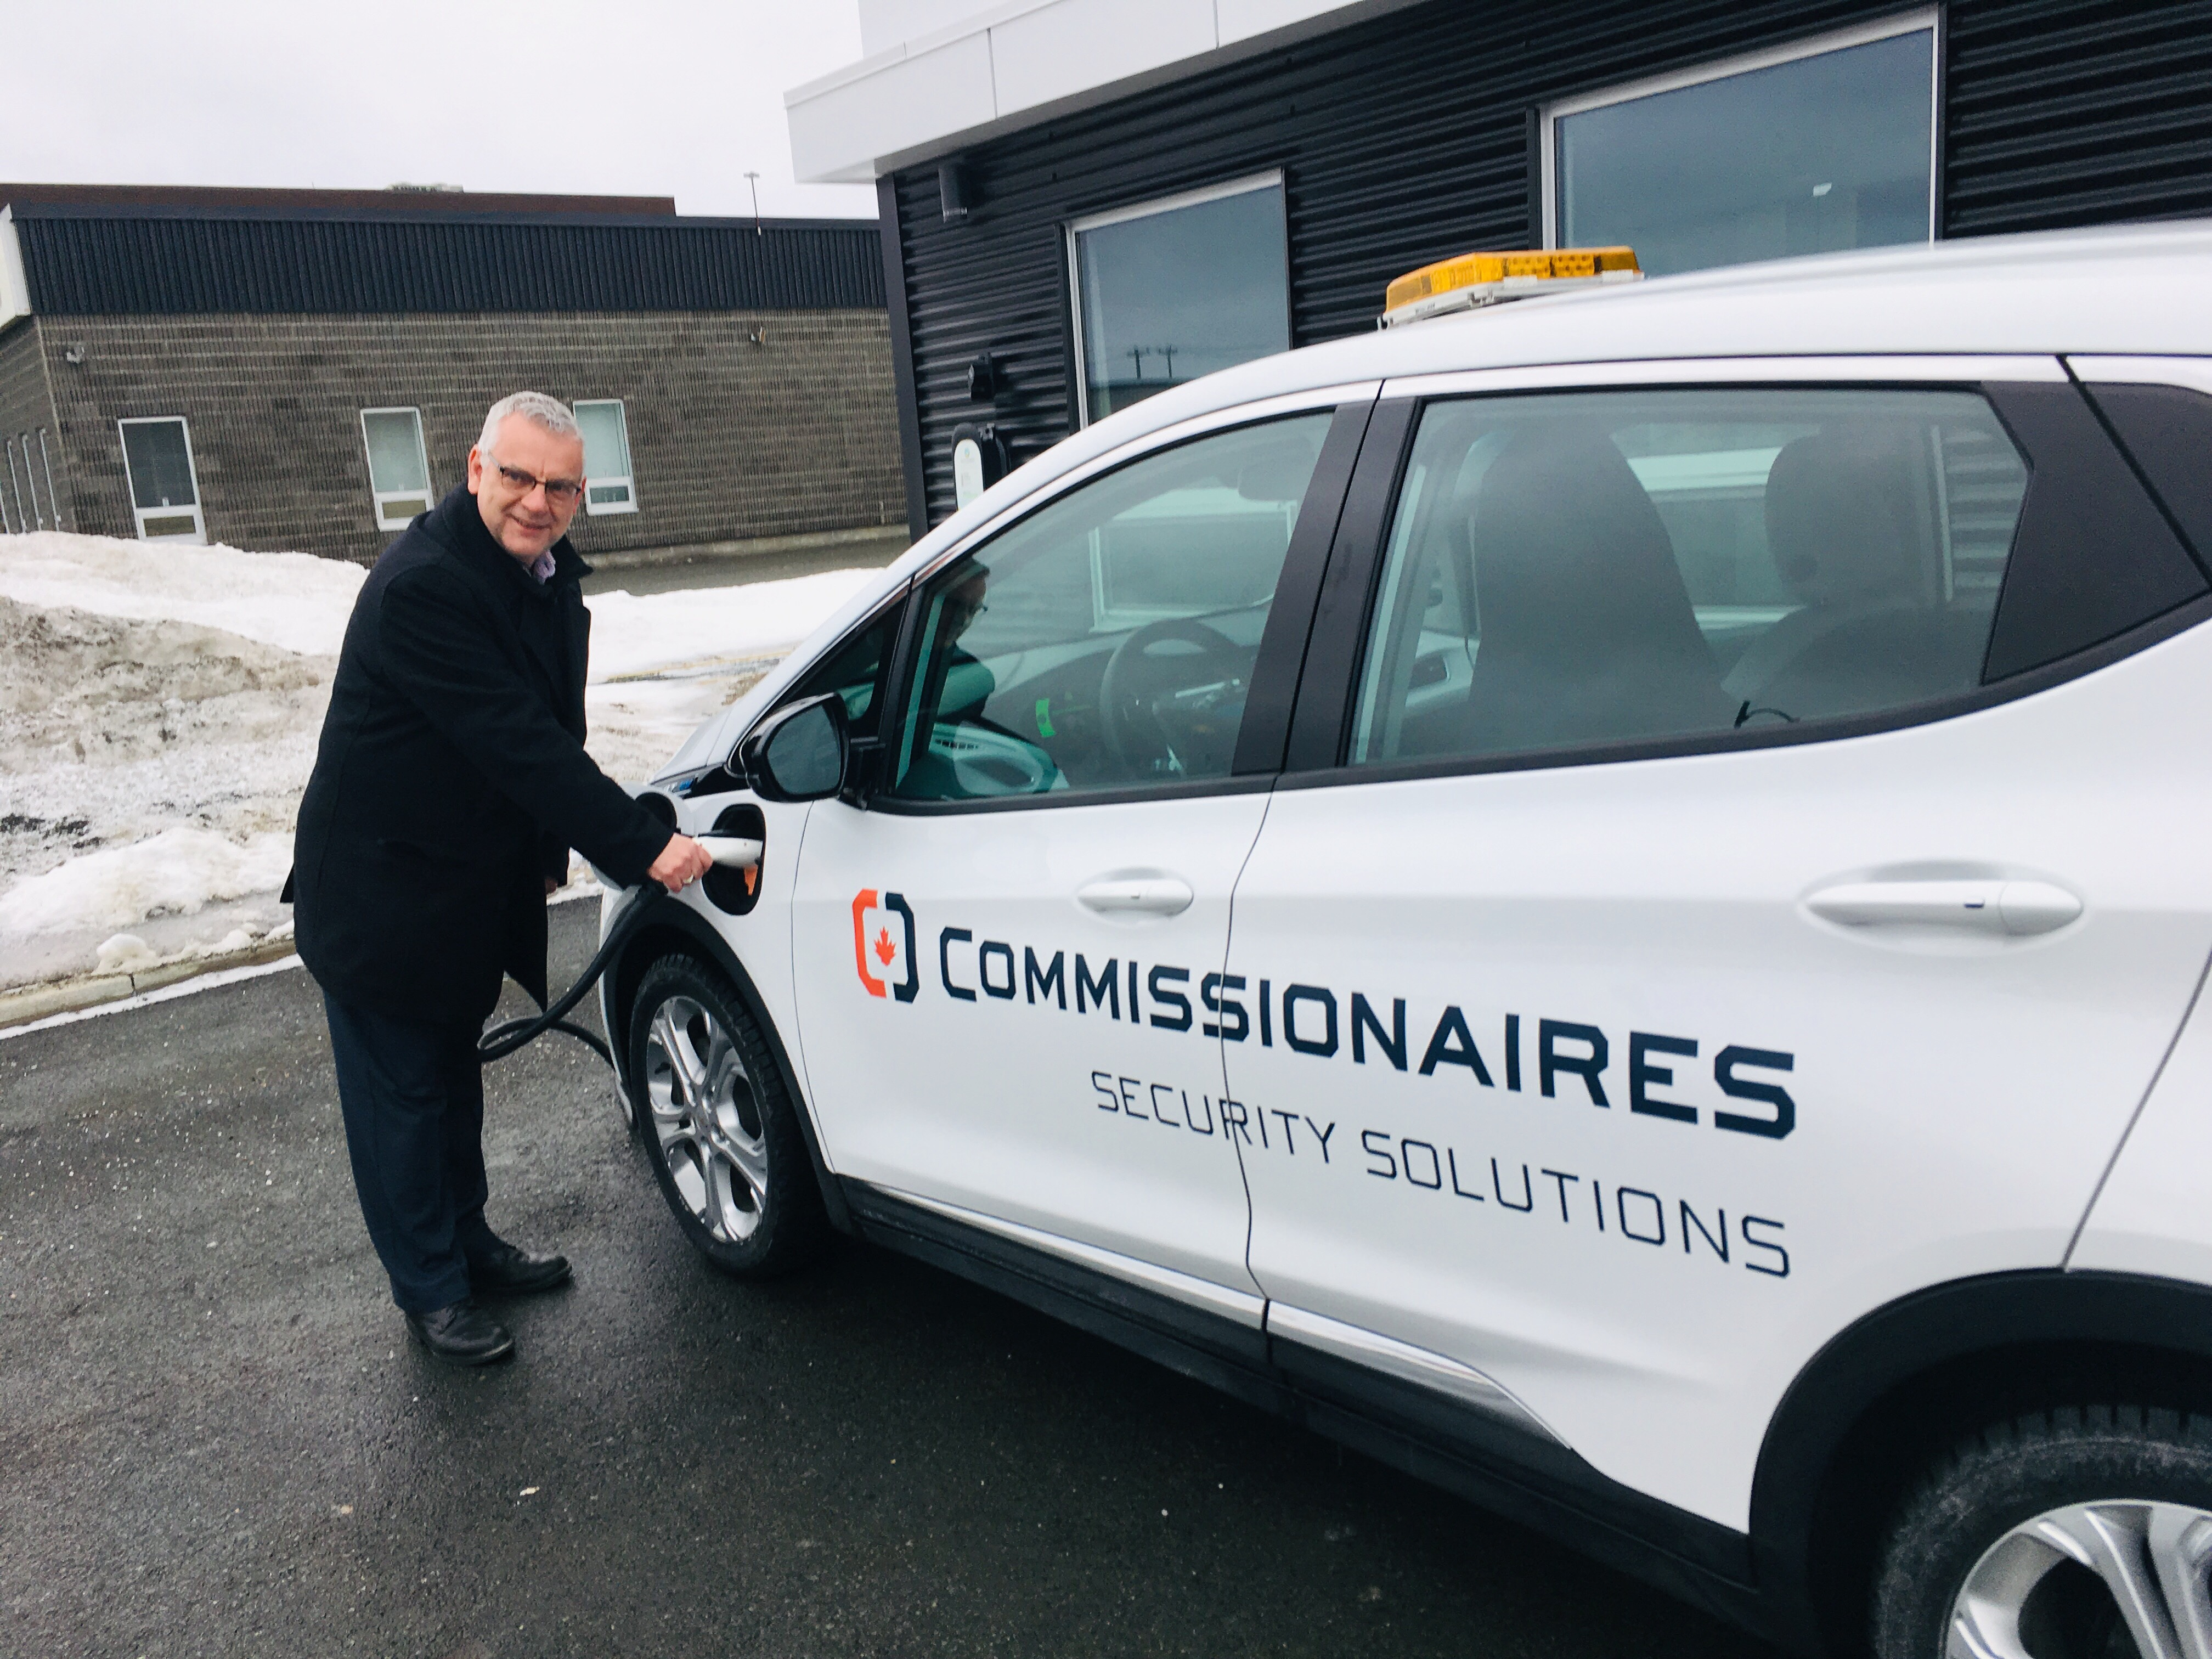 St. John's Mayor Danny Breen charging the new car